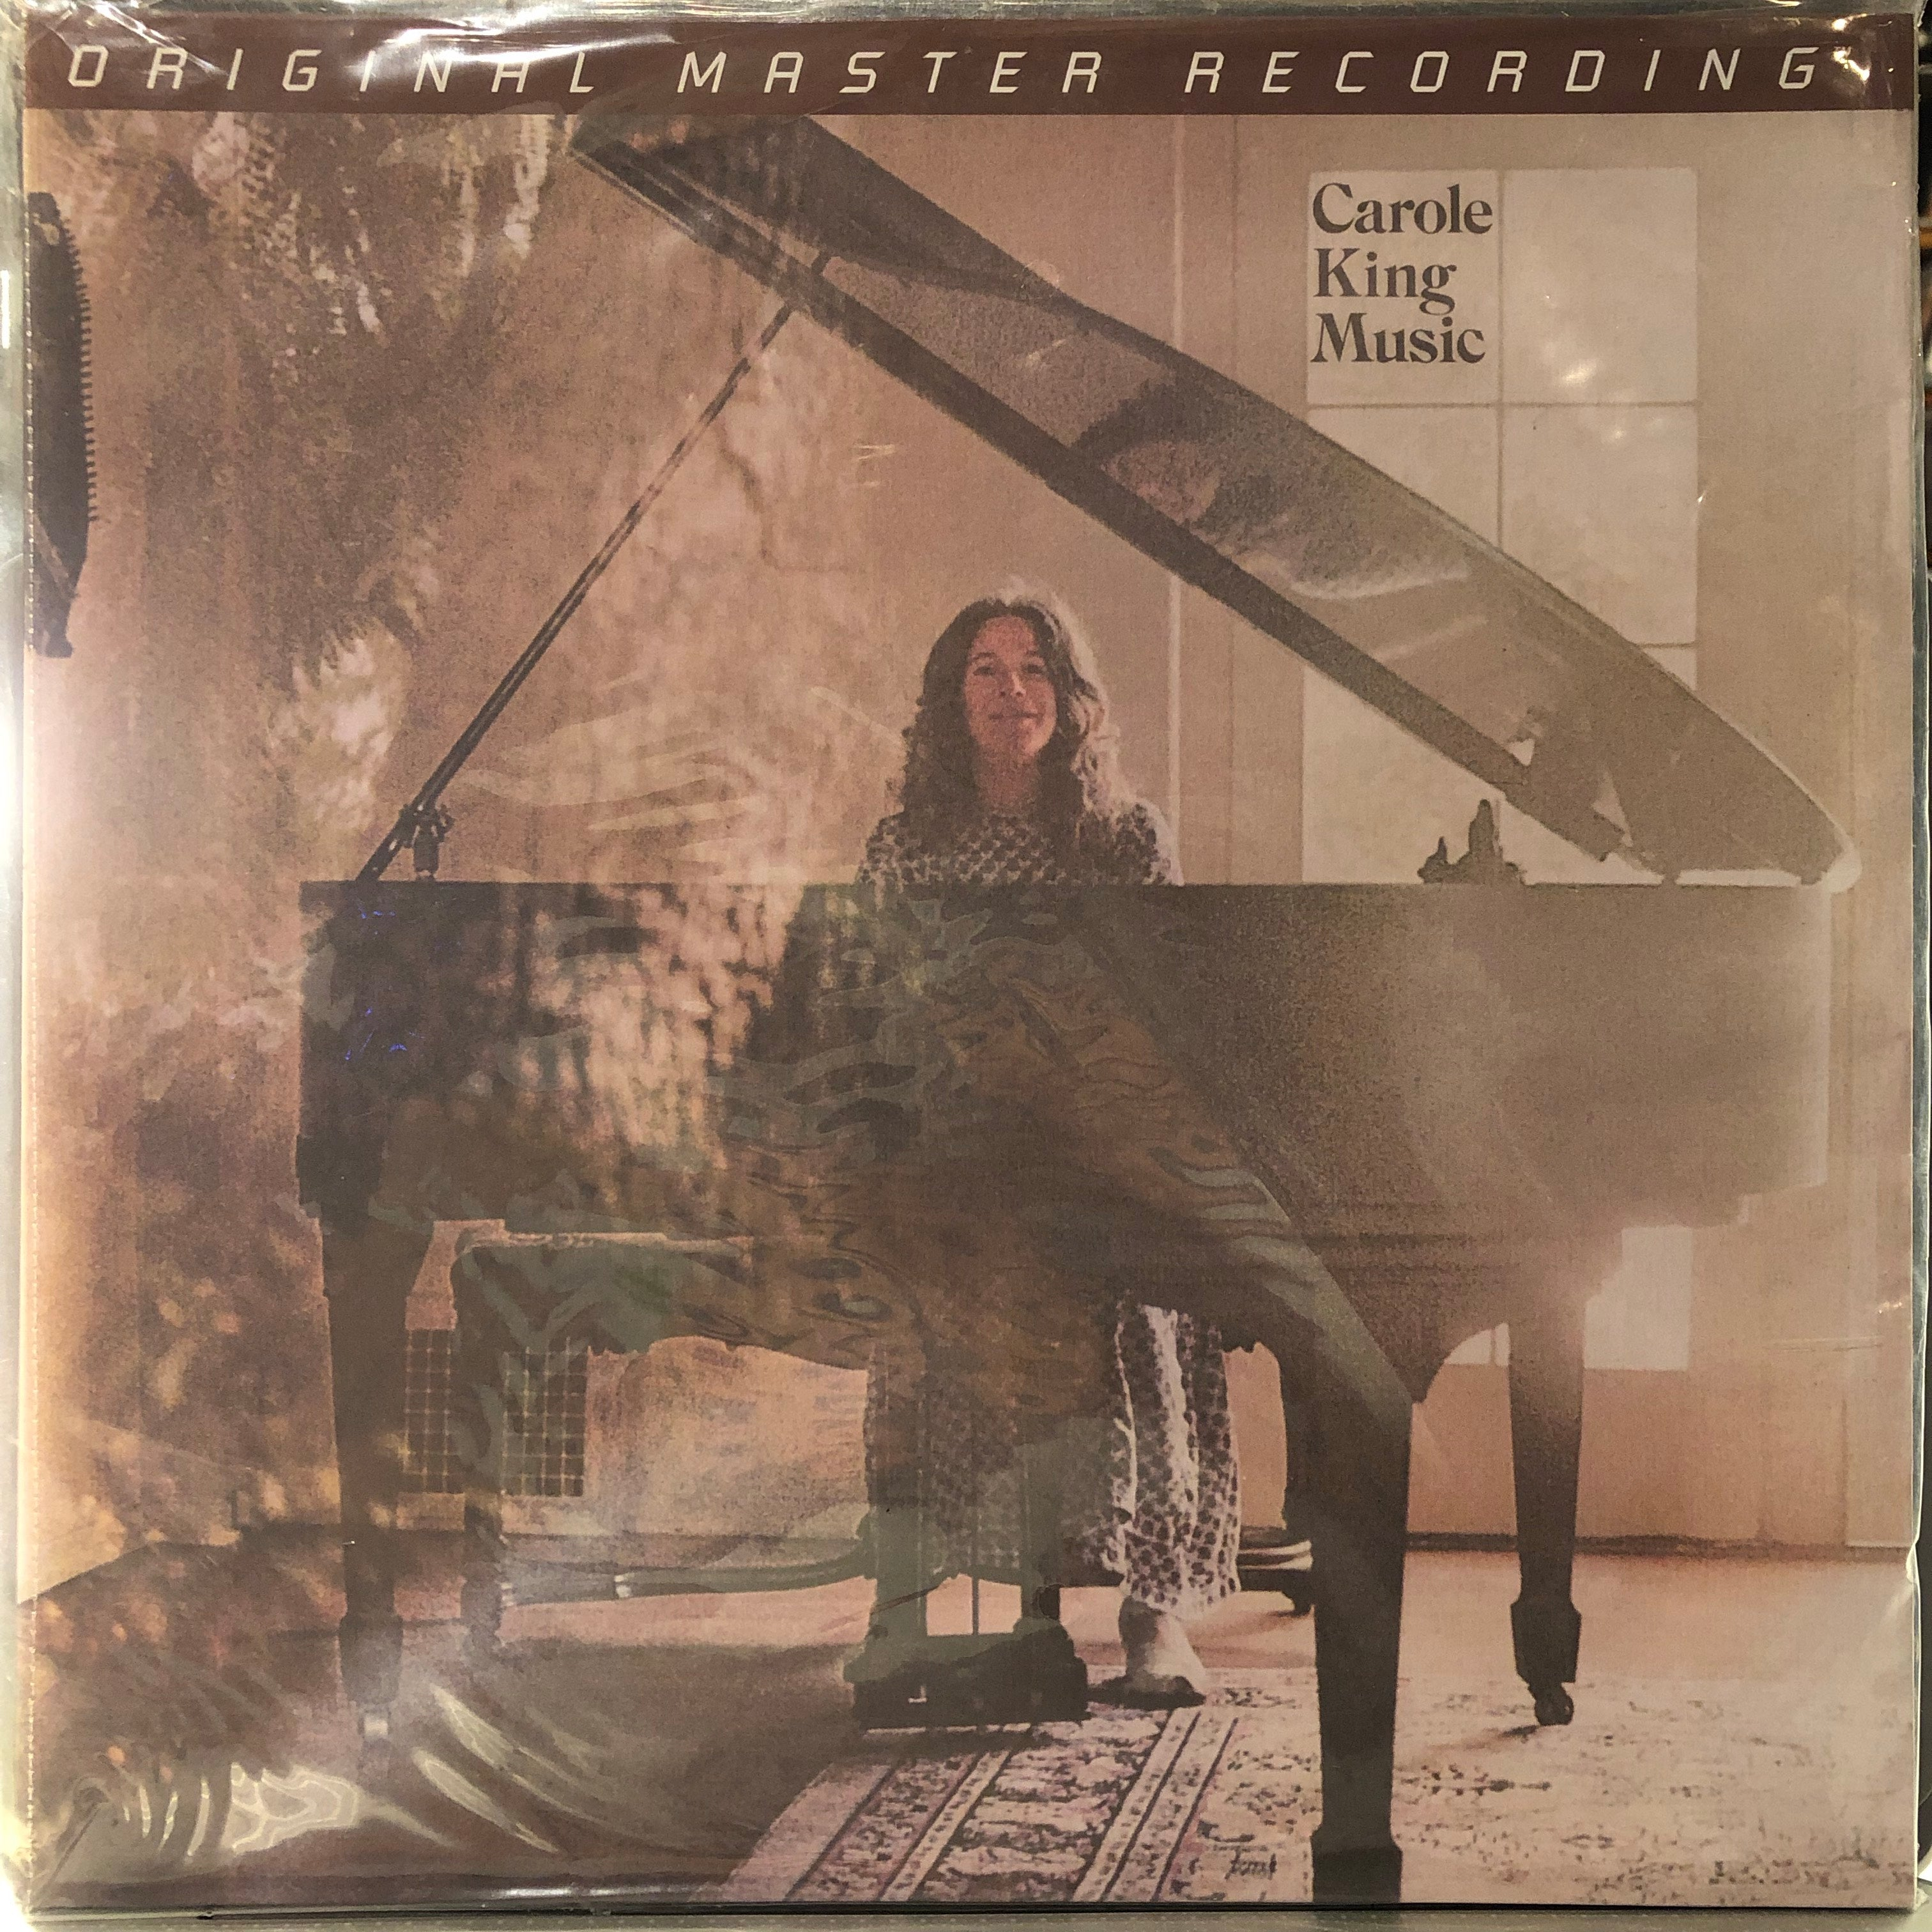 Carole King ‎– Music : Mobile Fidelity Sound Lab ‎– MFSL 1-352, : Vinyl, LP, Album, Limited Edition, Numbered, Reissue, Remastered